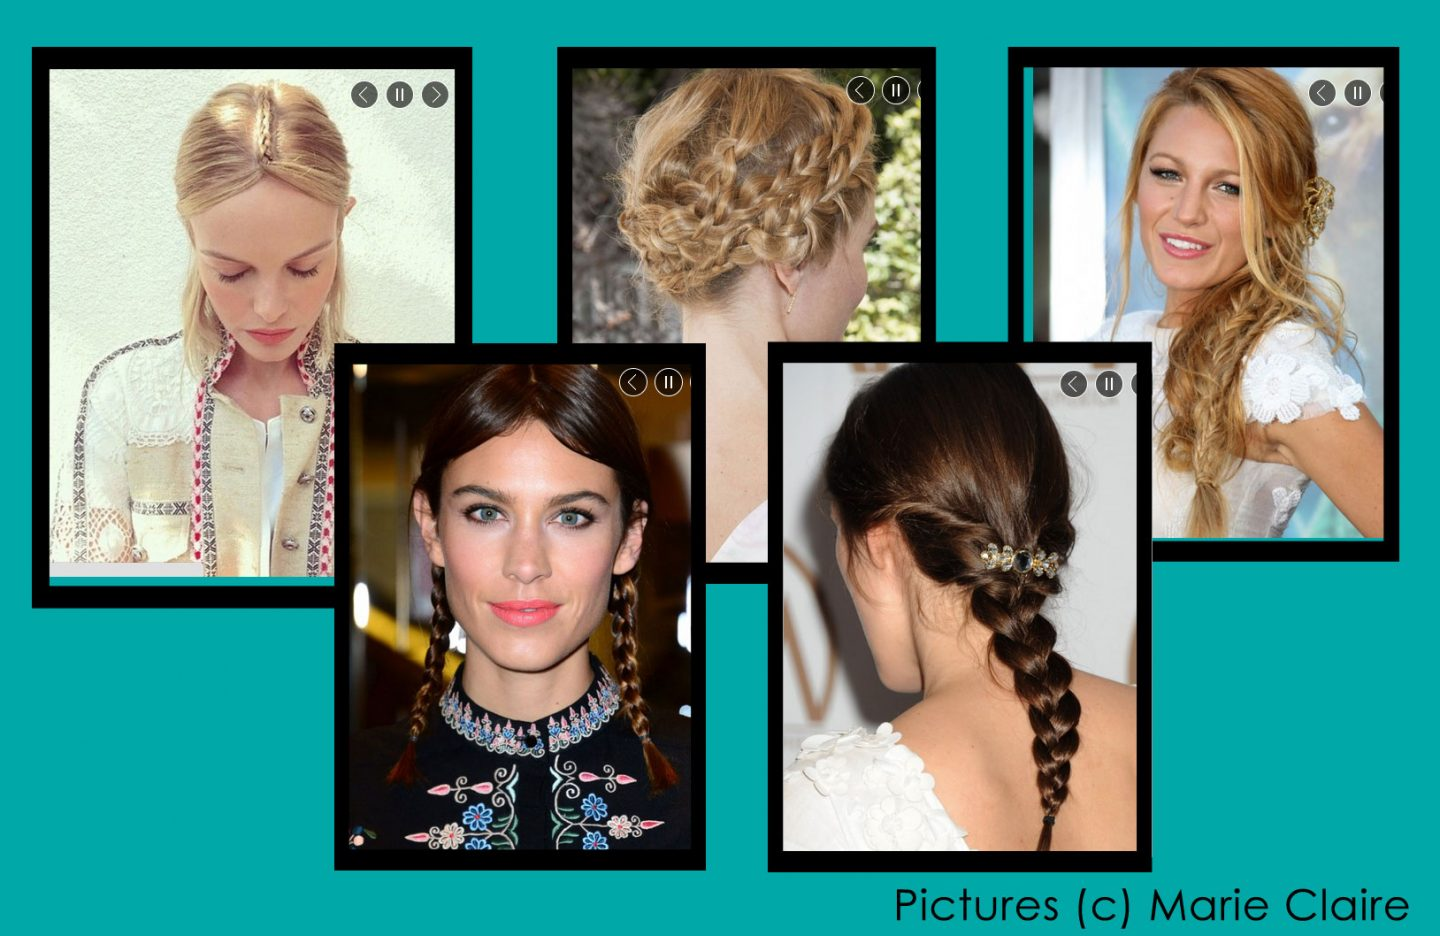 The easiest way to get festival braids – the Instatwist!